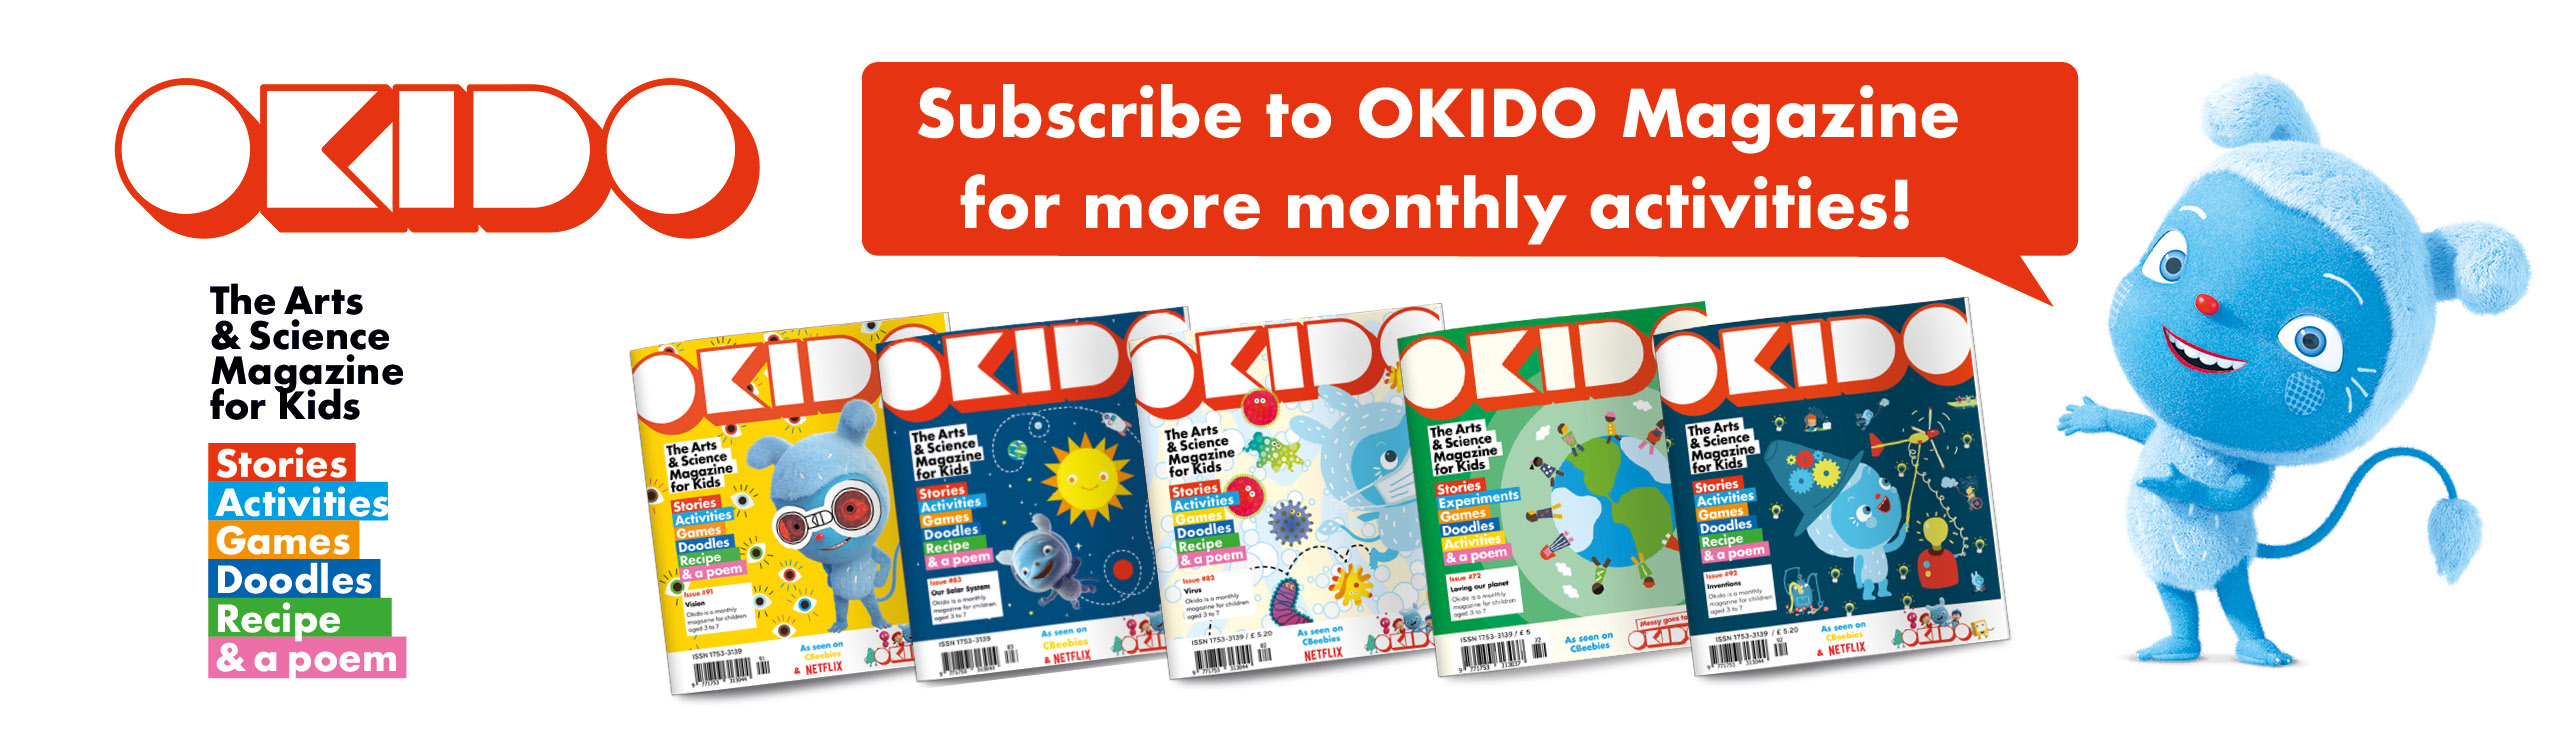 OKIDO_subscribeprompt_w